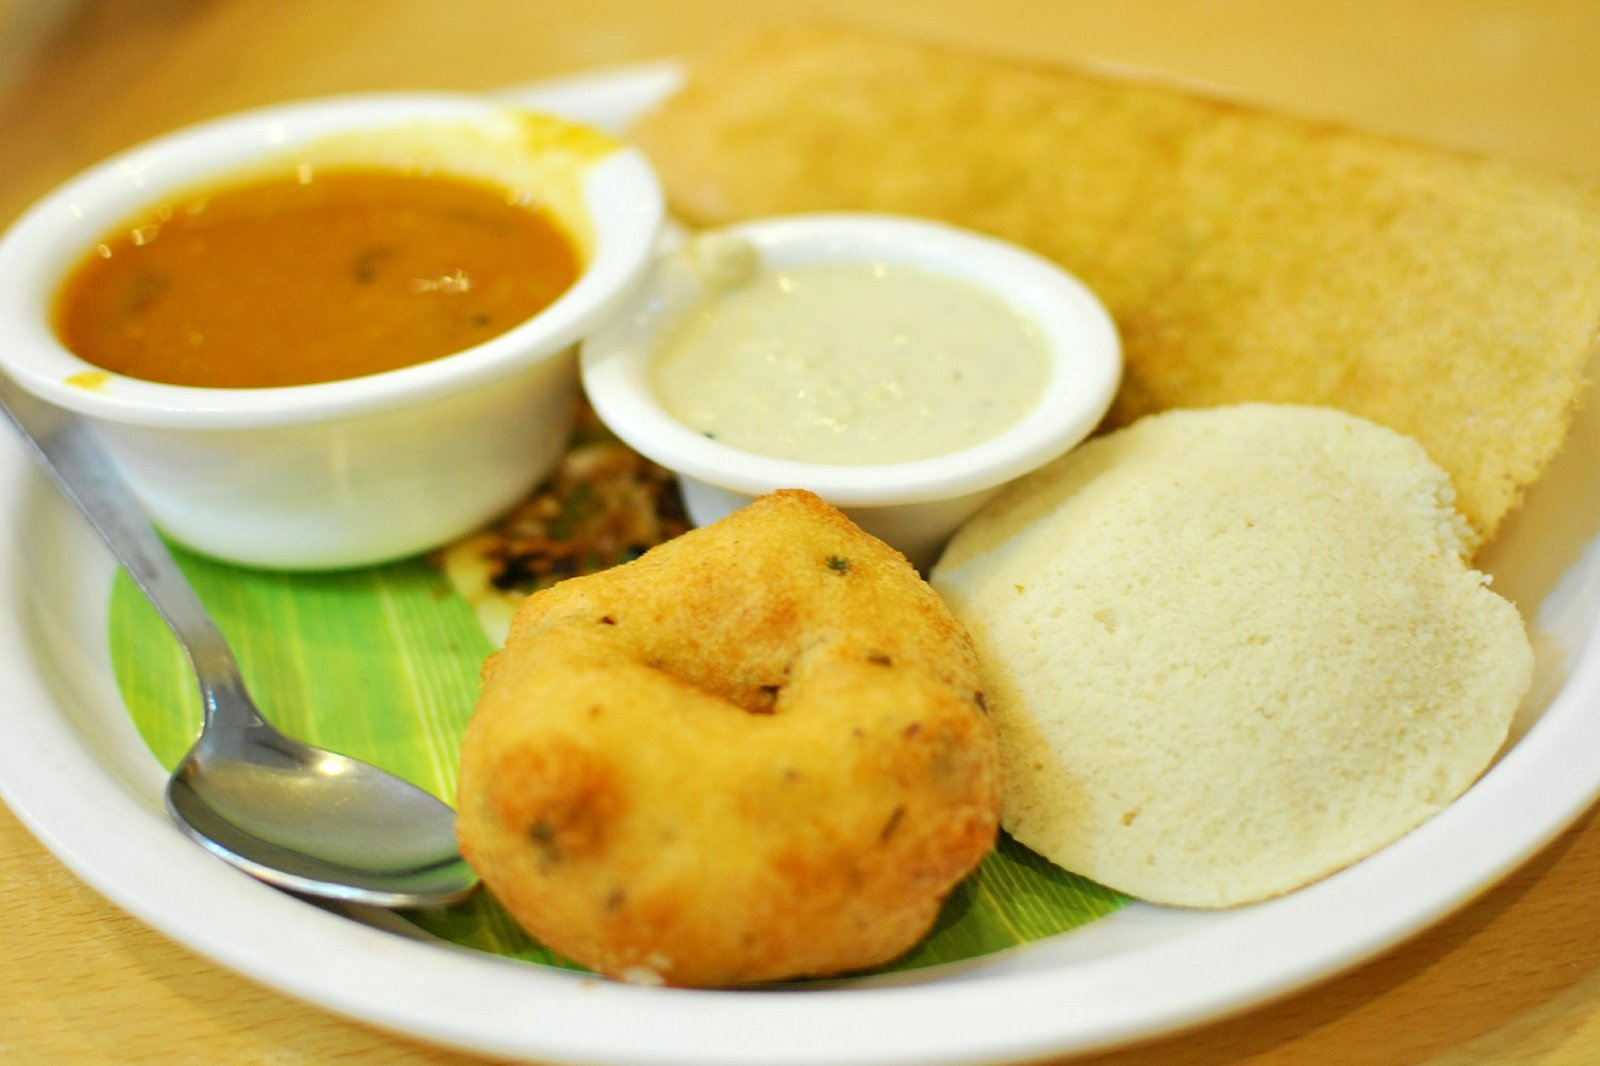 Great Restaurants in Little India - The Best Places to Eat